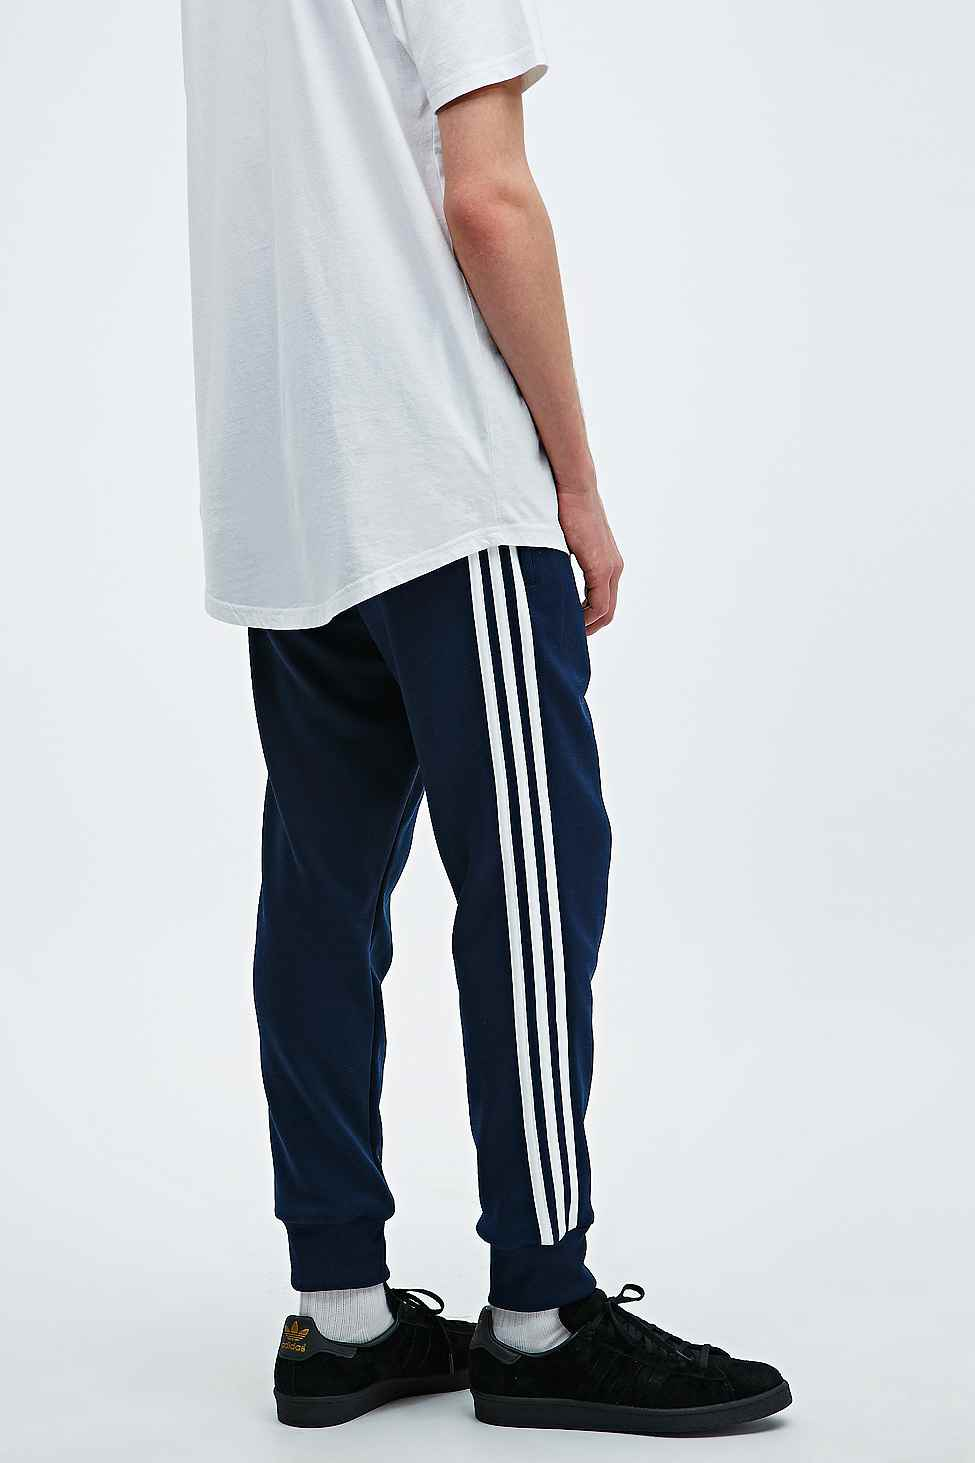 available 2192e cb38d Adidas Joggers Navy Blue  limited guantity 93f12  a8a29 adidas jogging bottoms navy a75fa2dca7cc